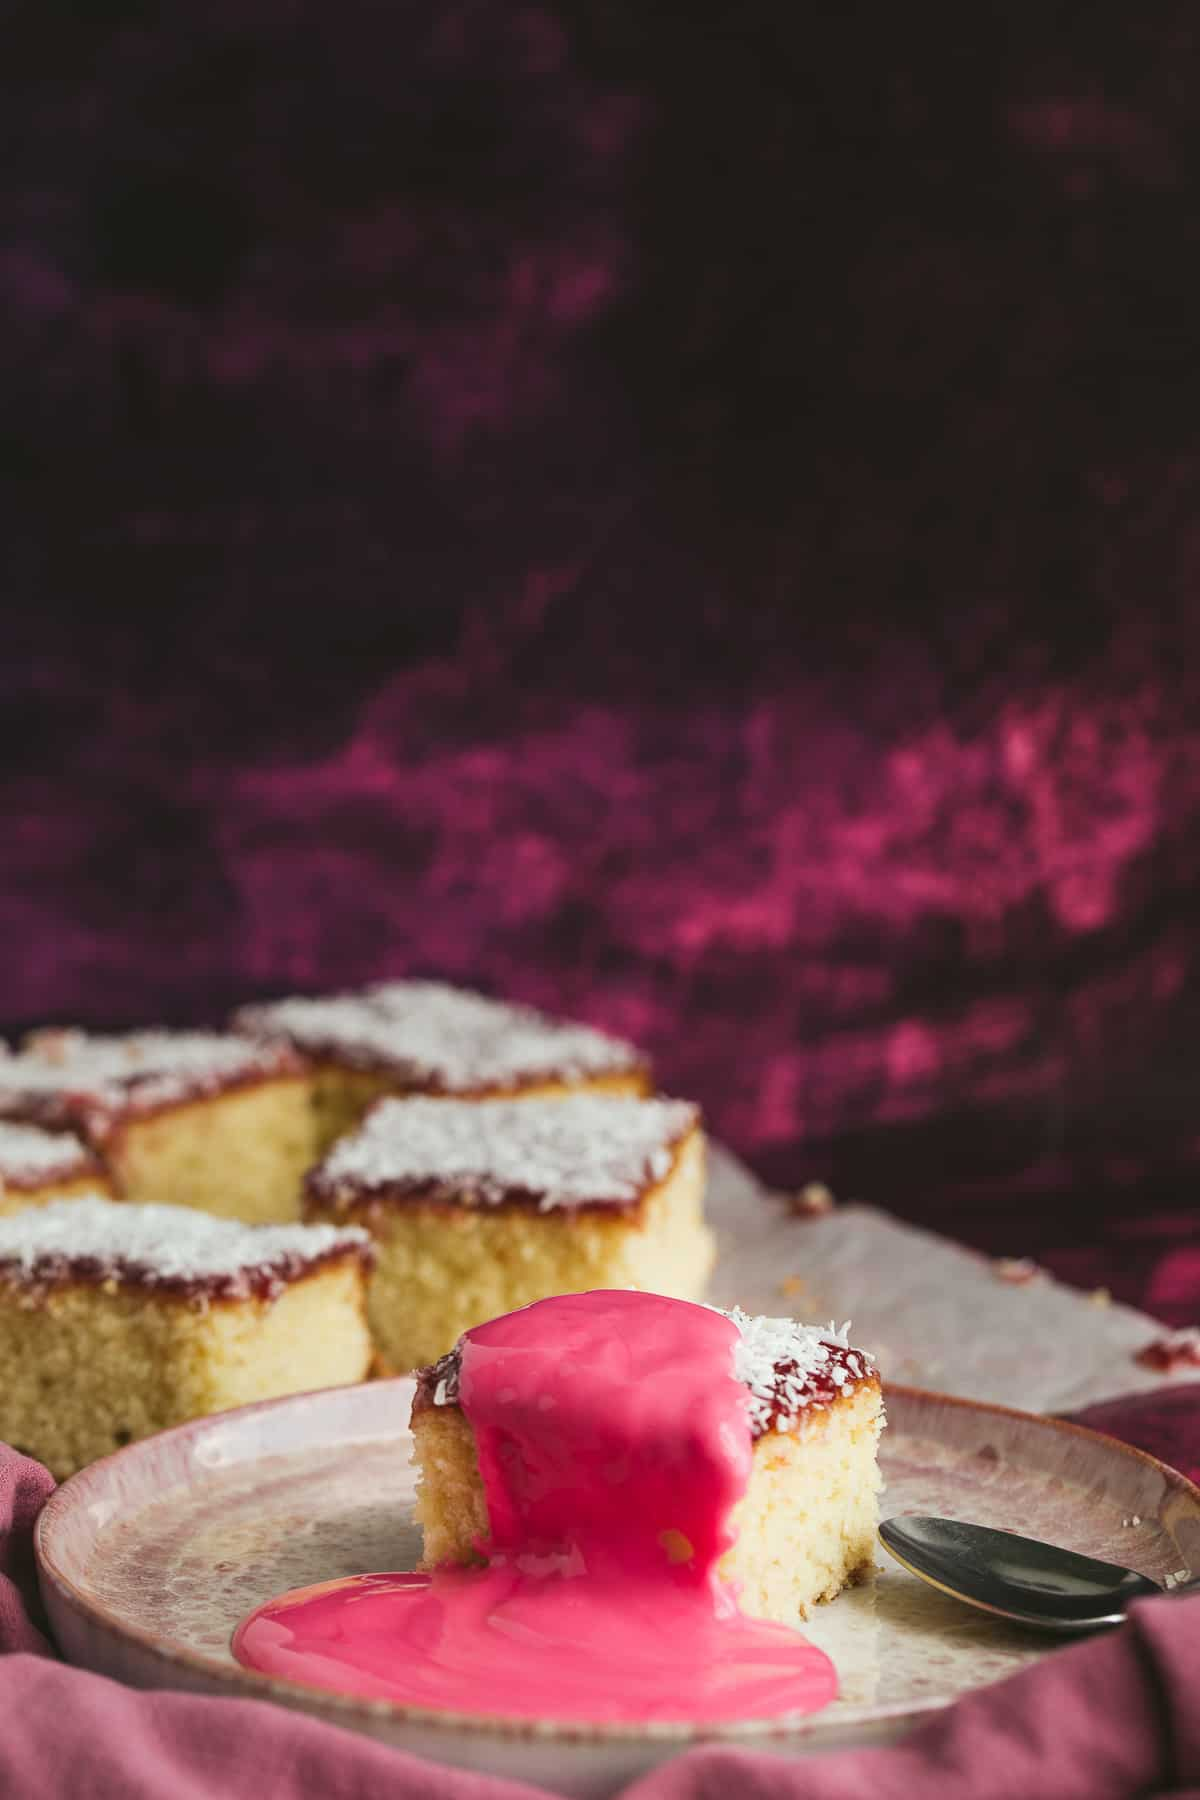 Old School Pudding with pink custard.